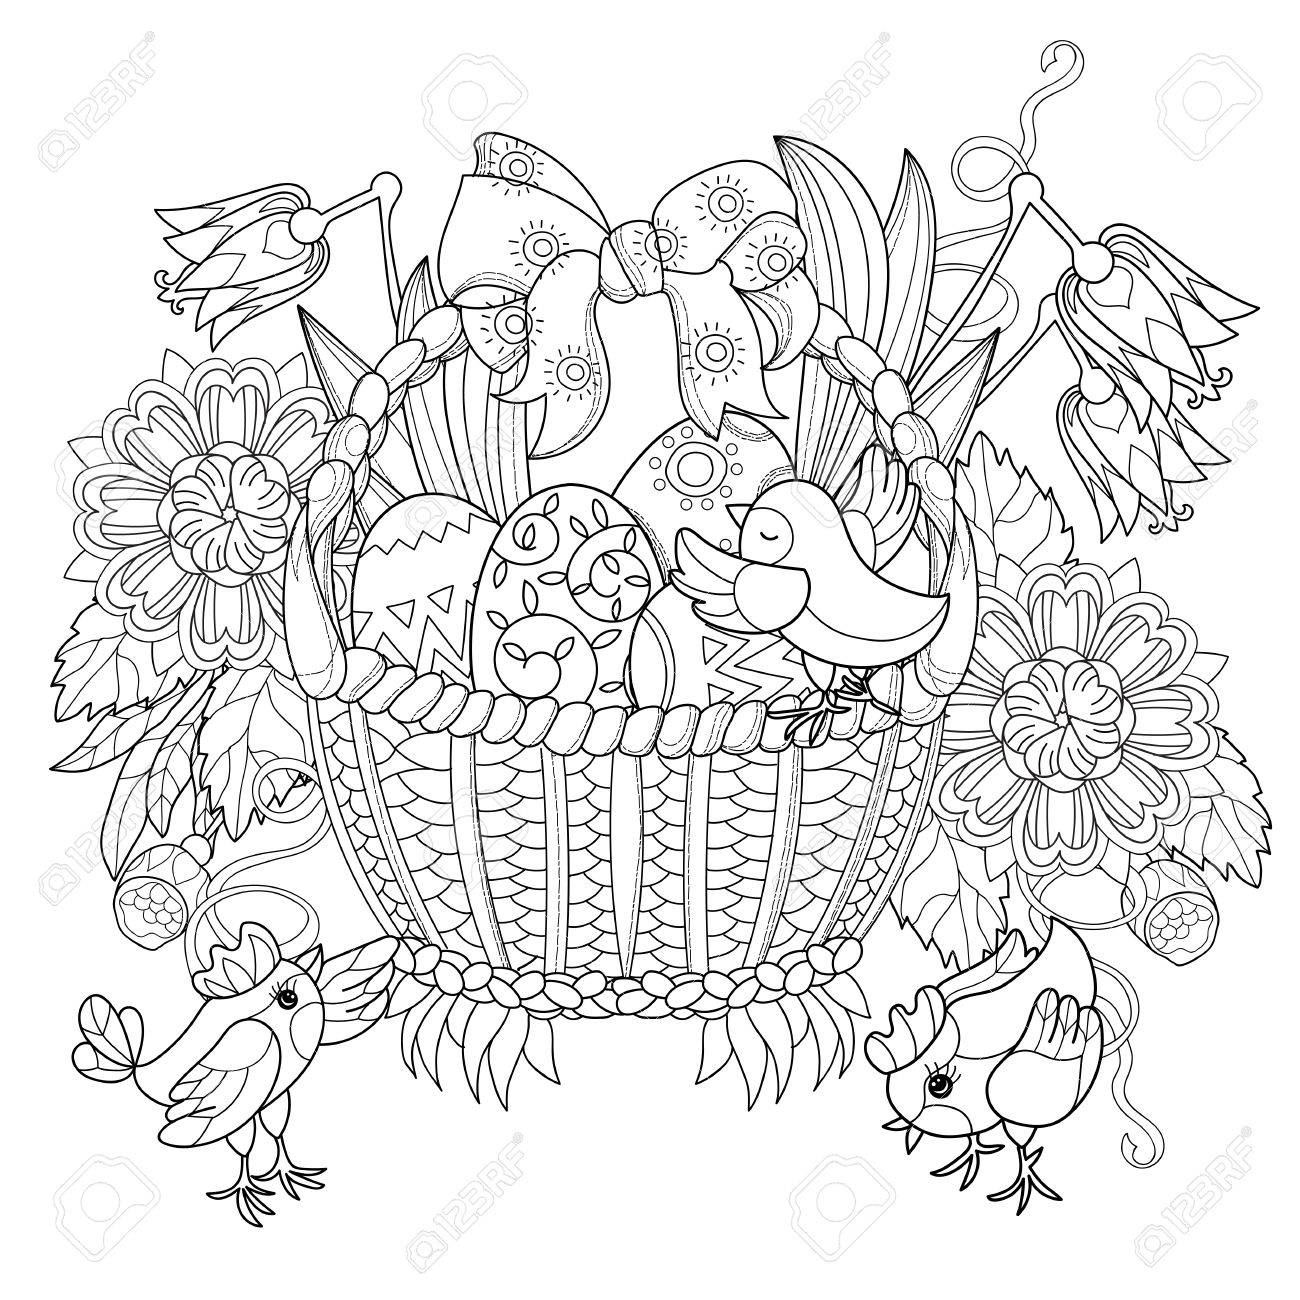 Hand Drawn Doodle Outline Easter Eggs In Basket With Chicken Decorated OrnamentsVector Illustration